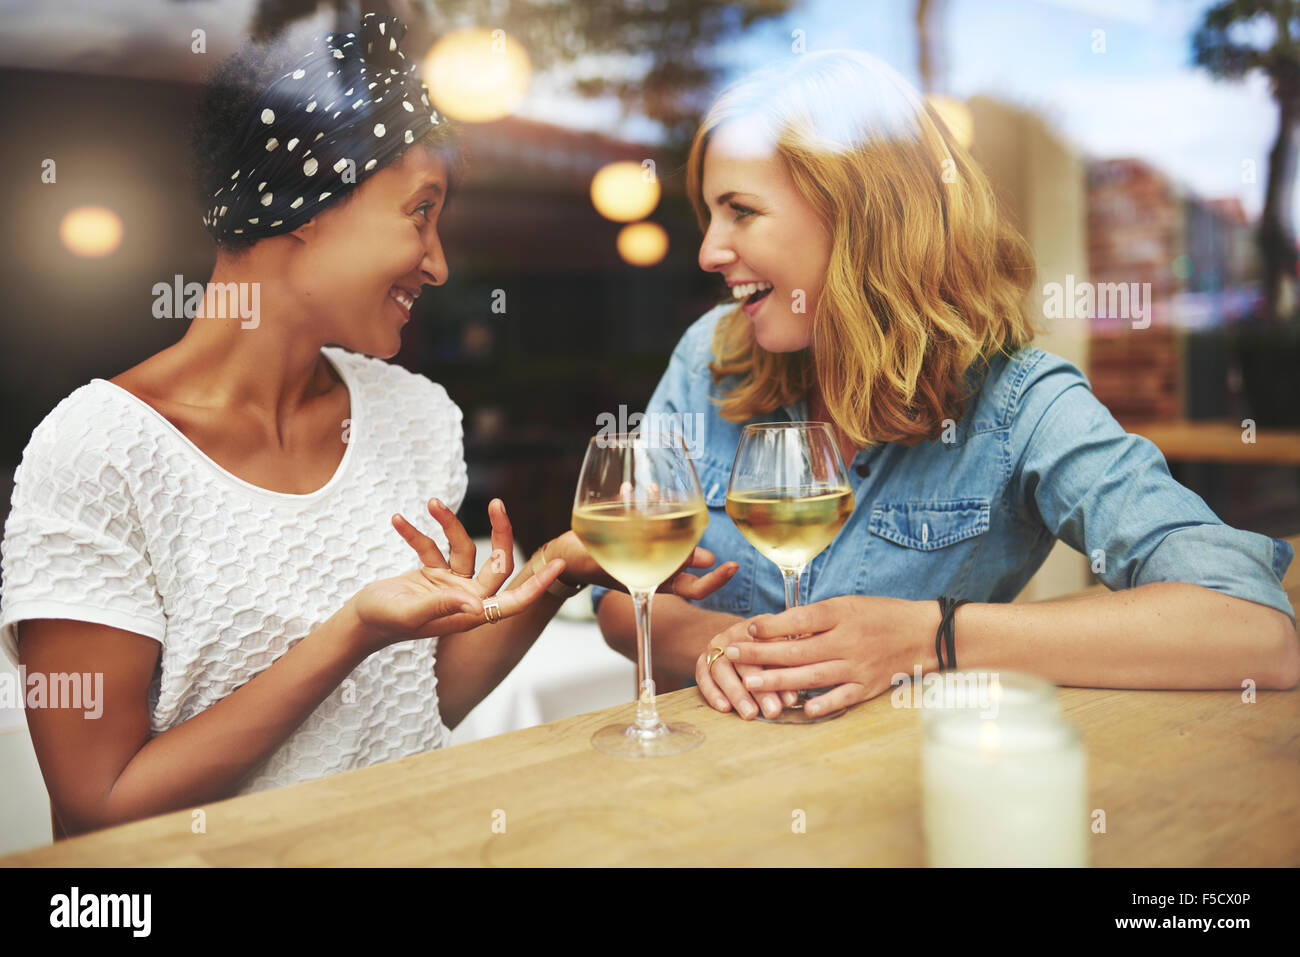 Two attractive women enjoying a glass of white wine together in a pub sitting at a table laughing and chatting with - Stock Image